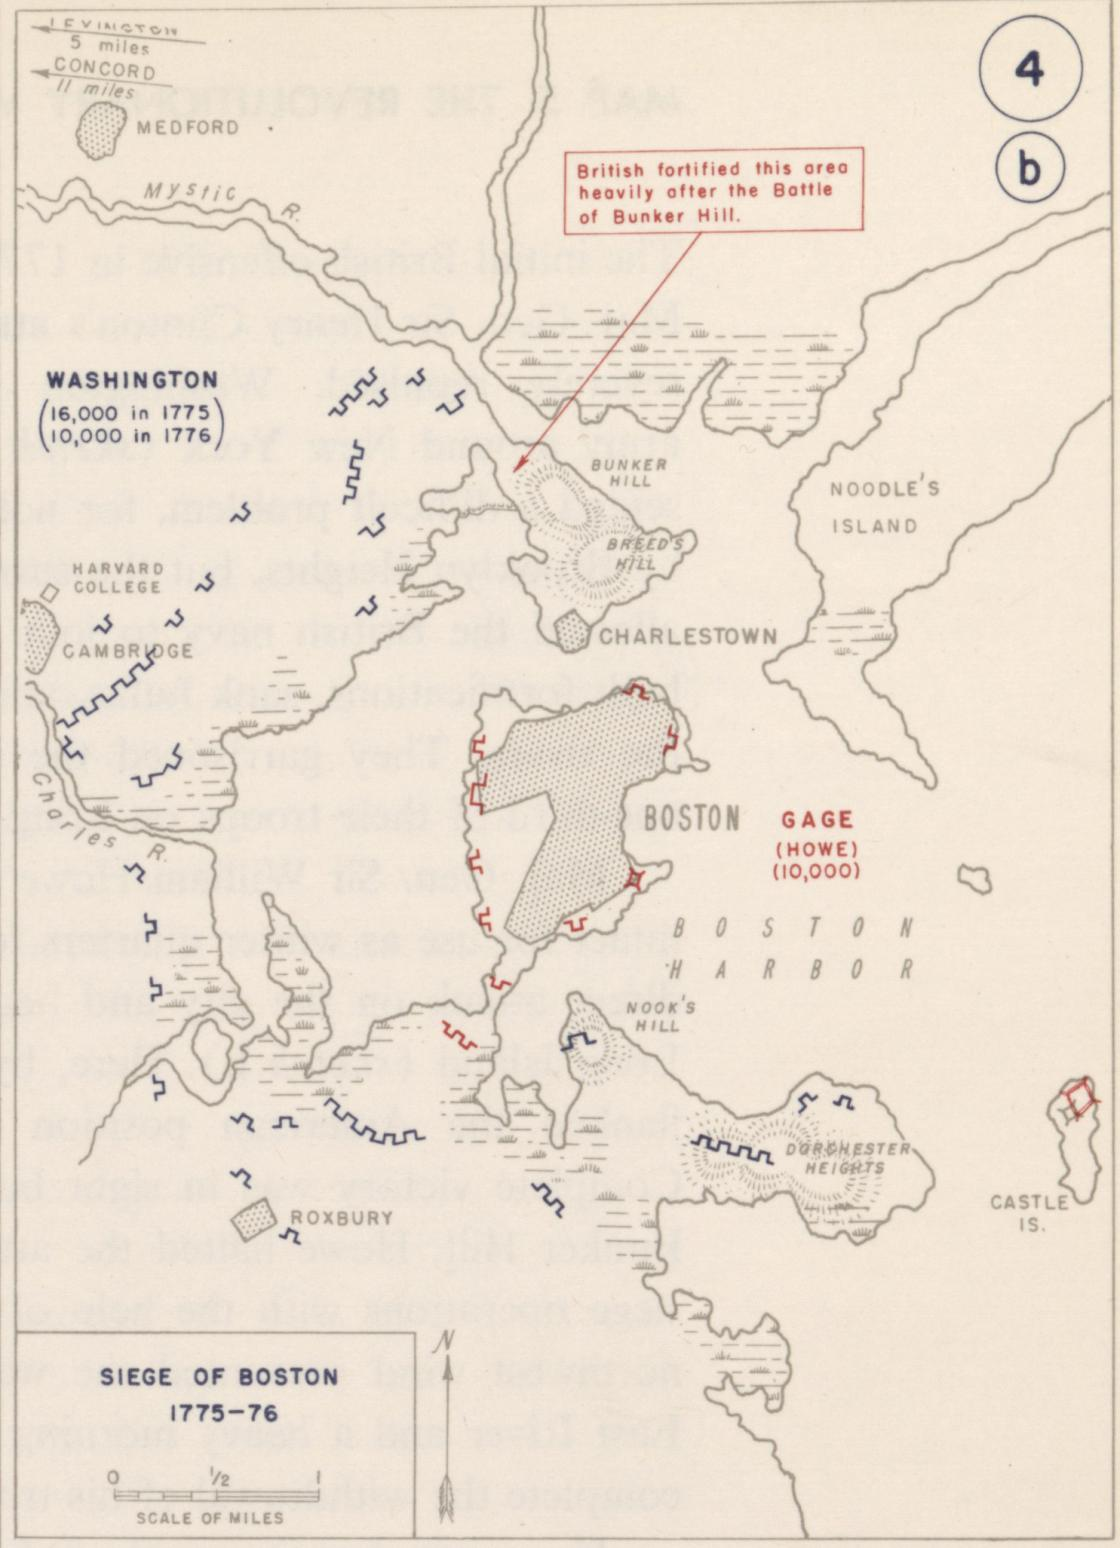 Siege of Boston 1775-76